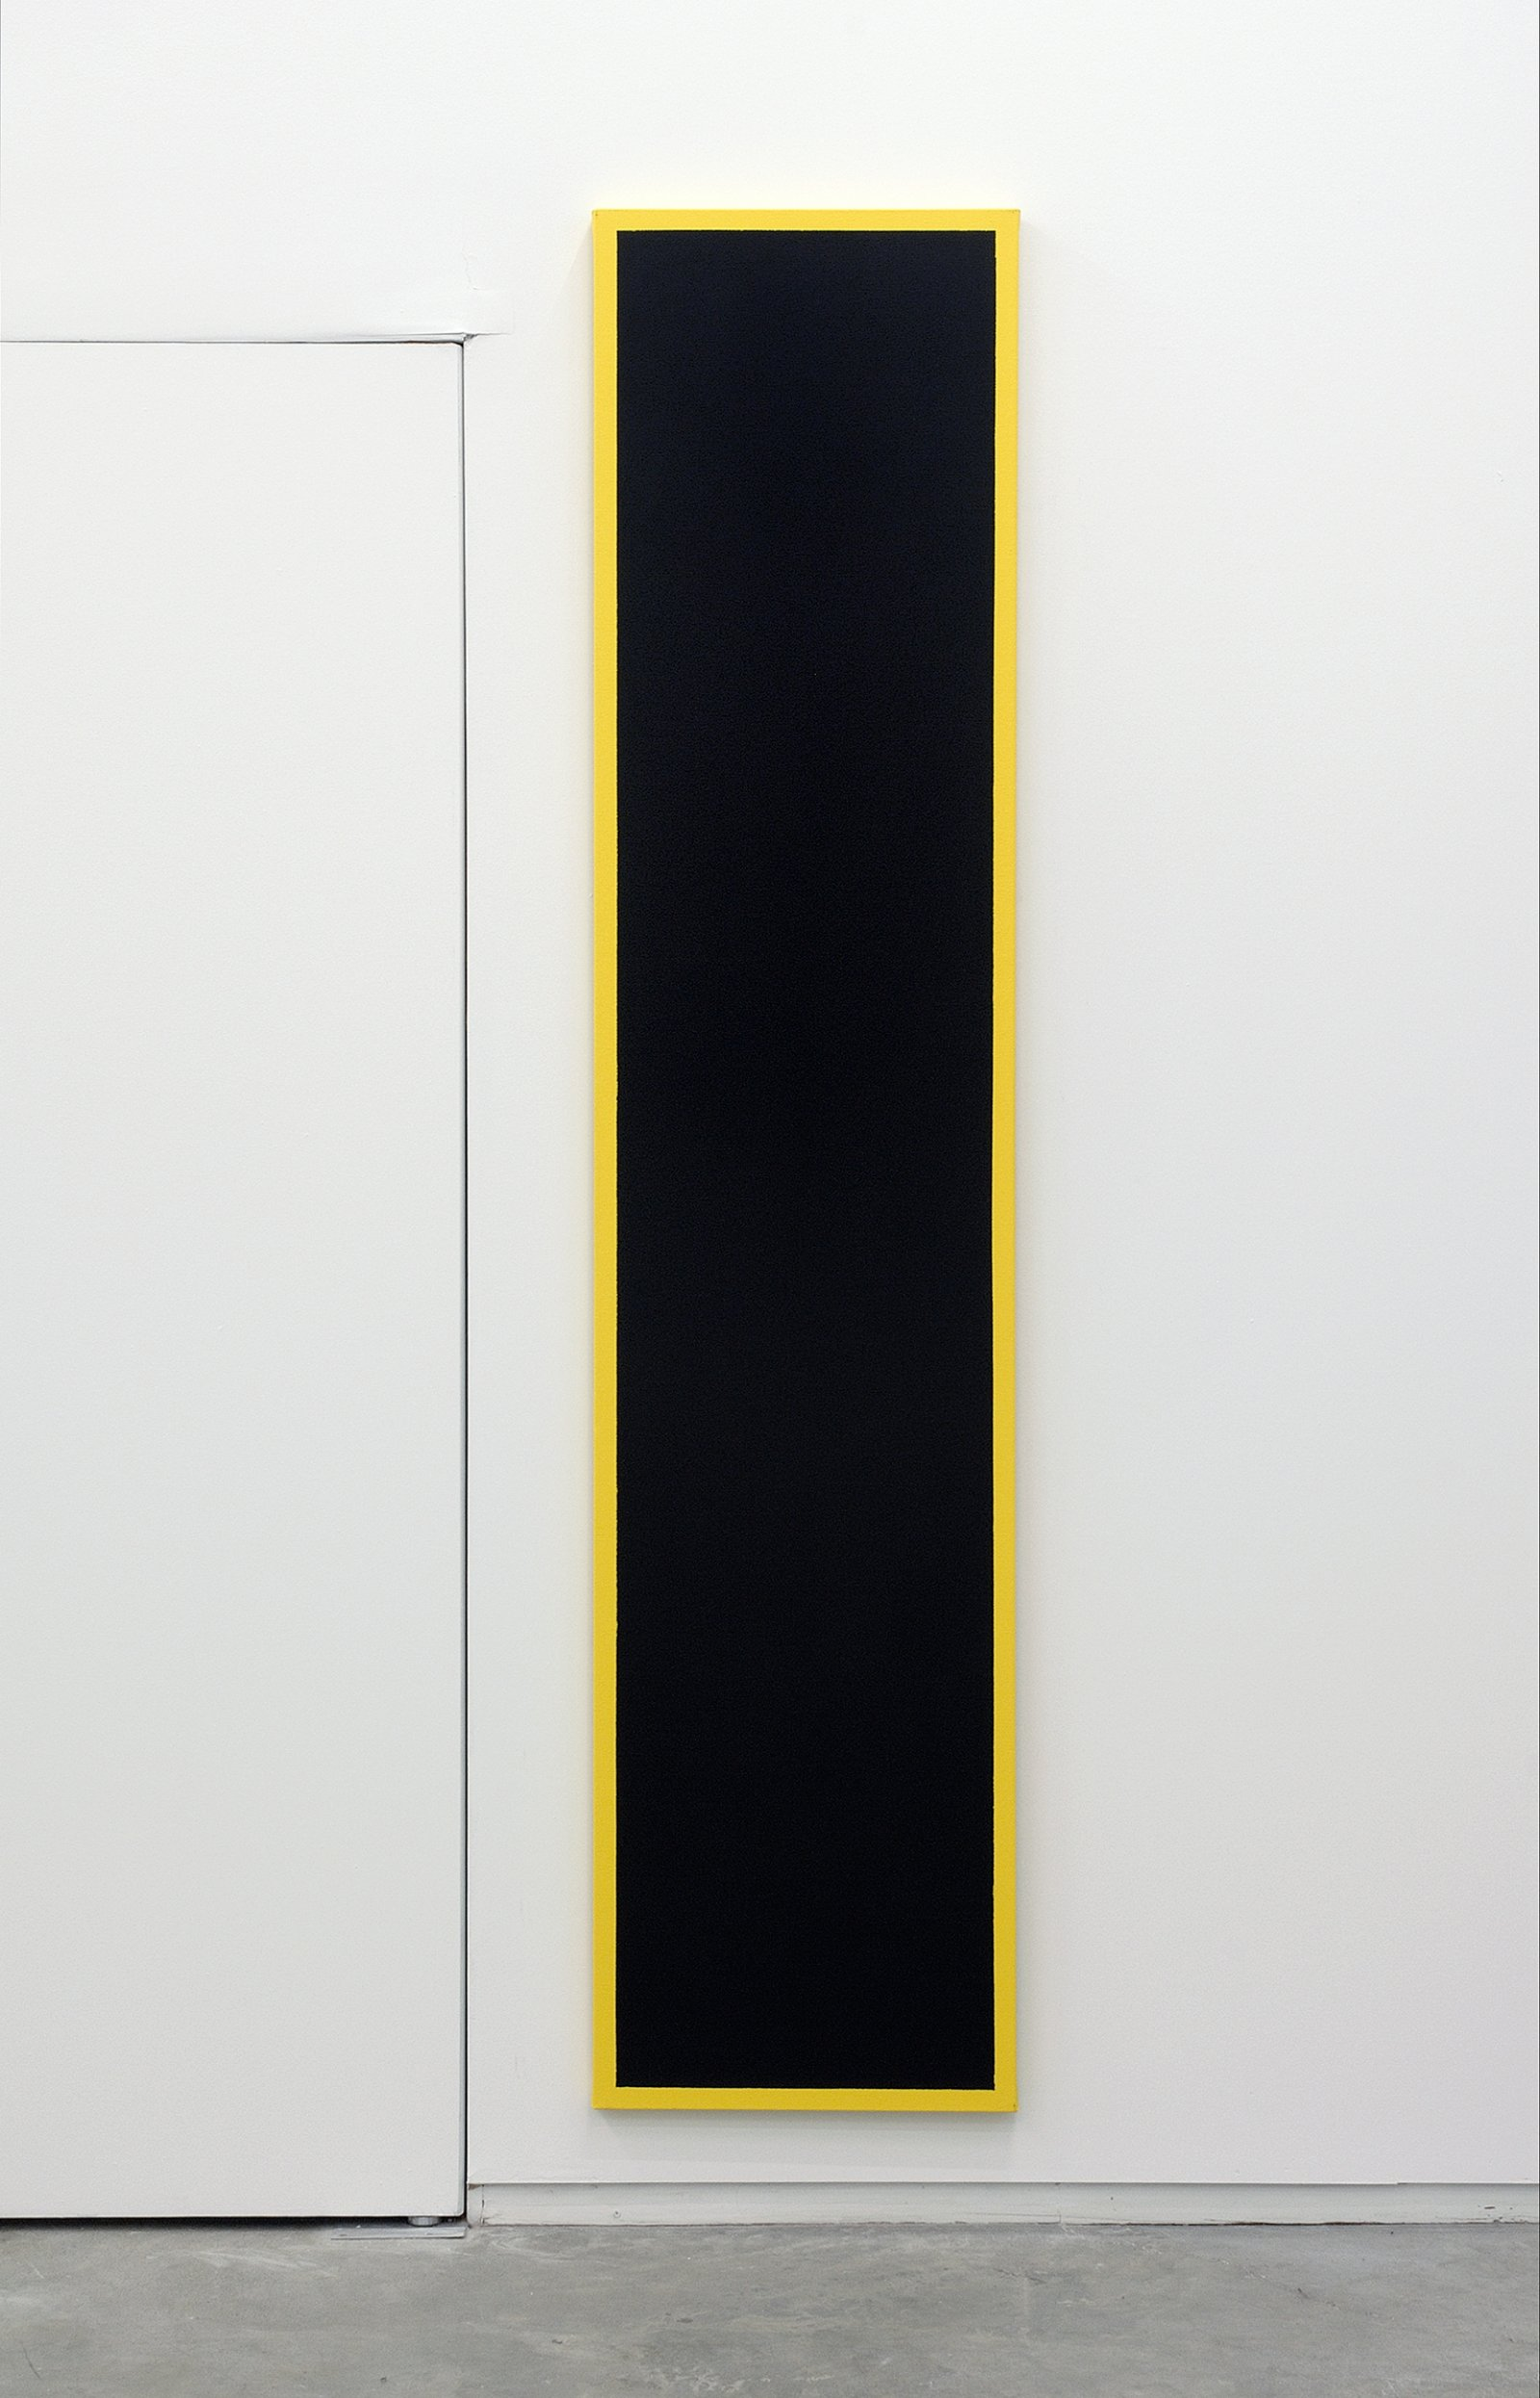 ​​Ian Wallace, Untitled (Black Monochrome with Yellow), 1967–2007, acrylic on canvas, 90 x 20 in. (229 x 51 cm)​​​​​ by Ian Wallace